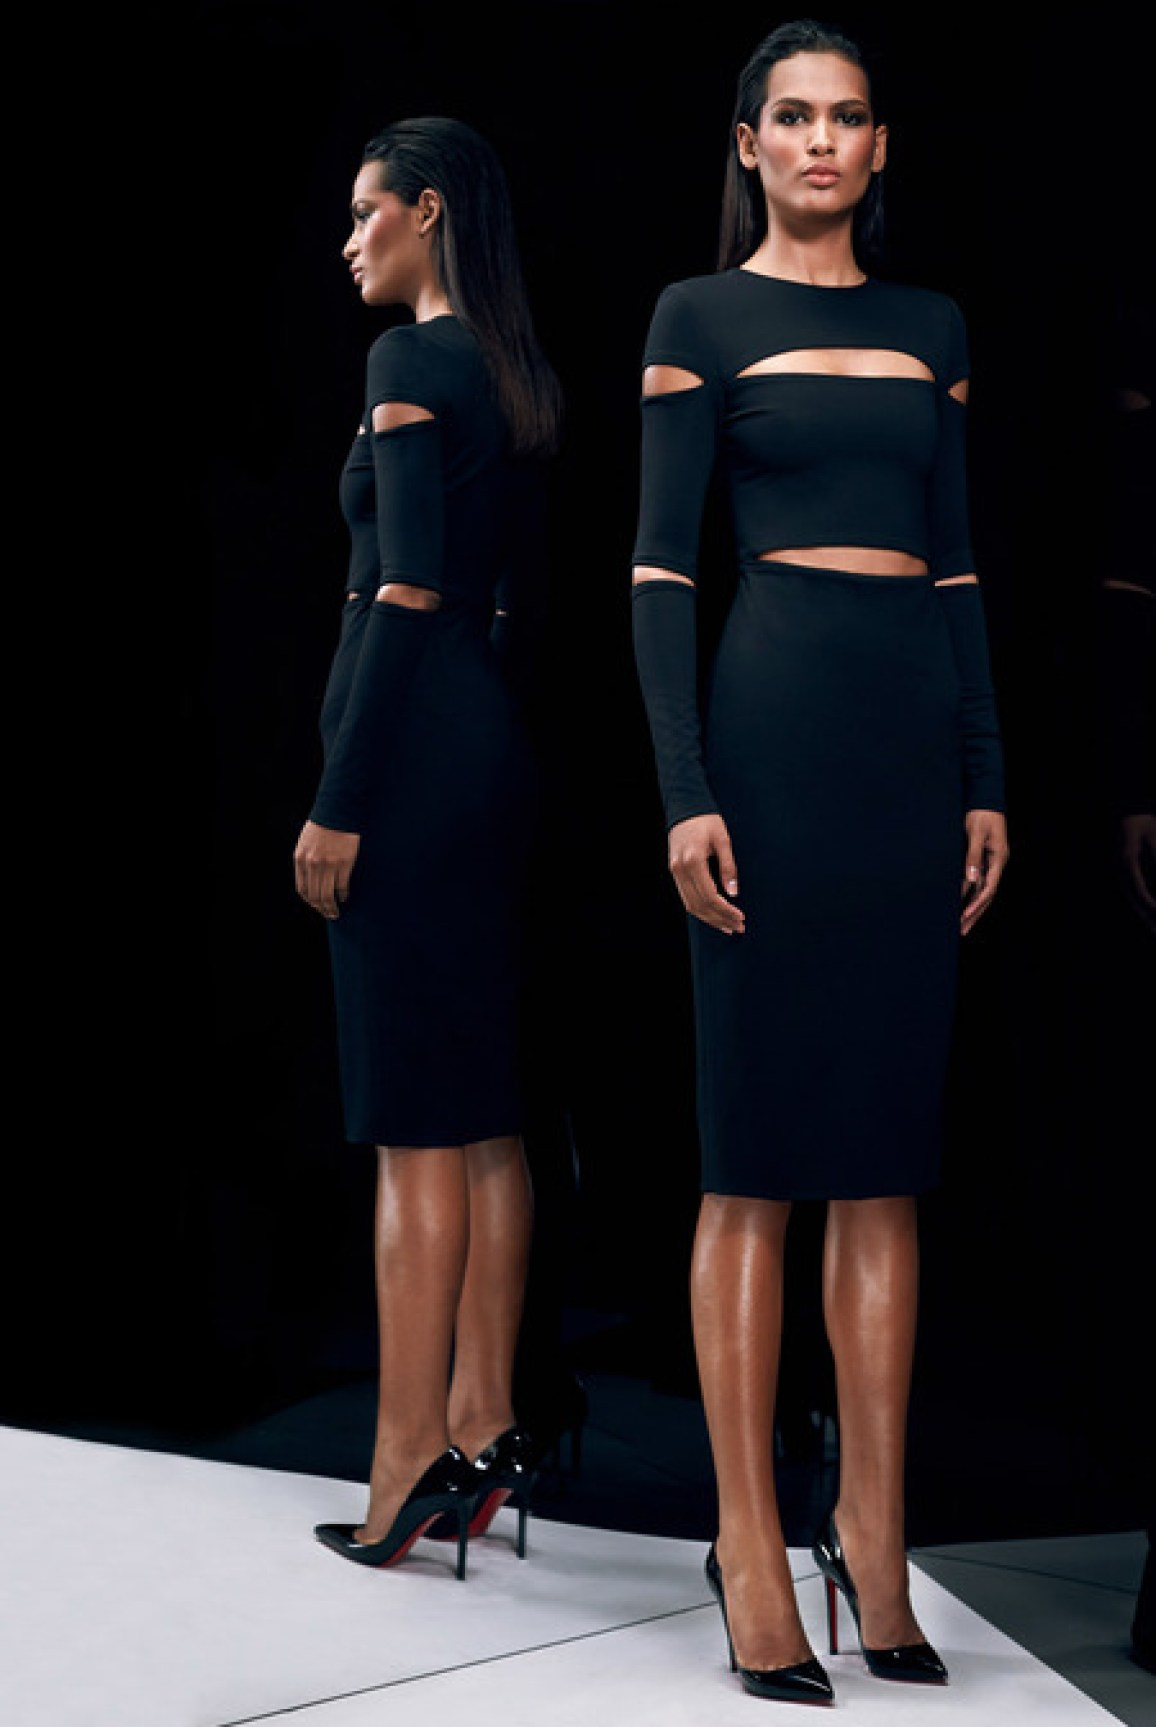 Cushnie-et-Ochs-pre-fall-2014_latest-designer-collections_regal-fashion-trends_delicate-style_high-end-fashion-bloggers-australia_luxury-bloggers-australia_top-fashion-bloggers-australia_best-fashion-editorials_2014_the-little-black-dress